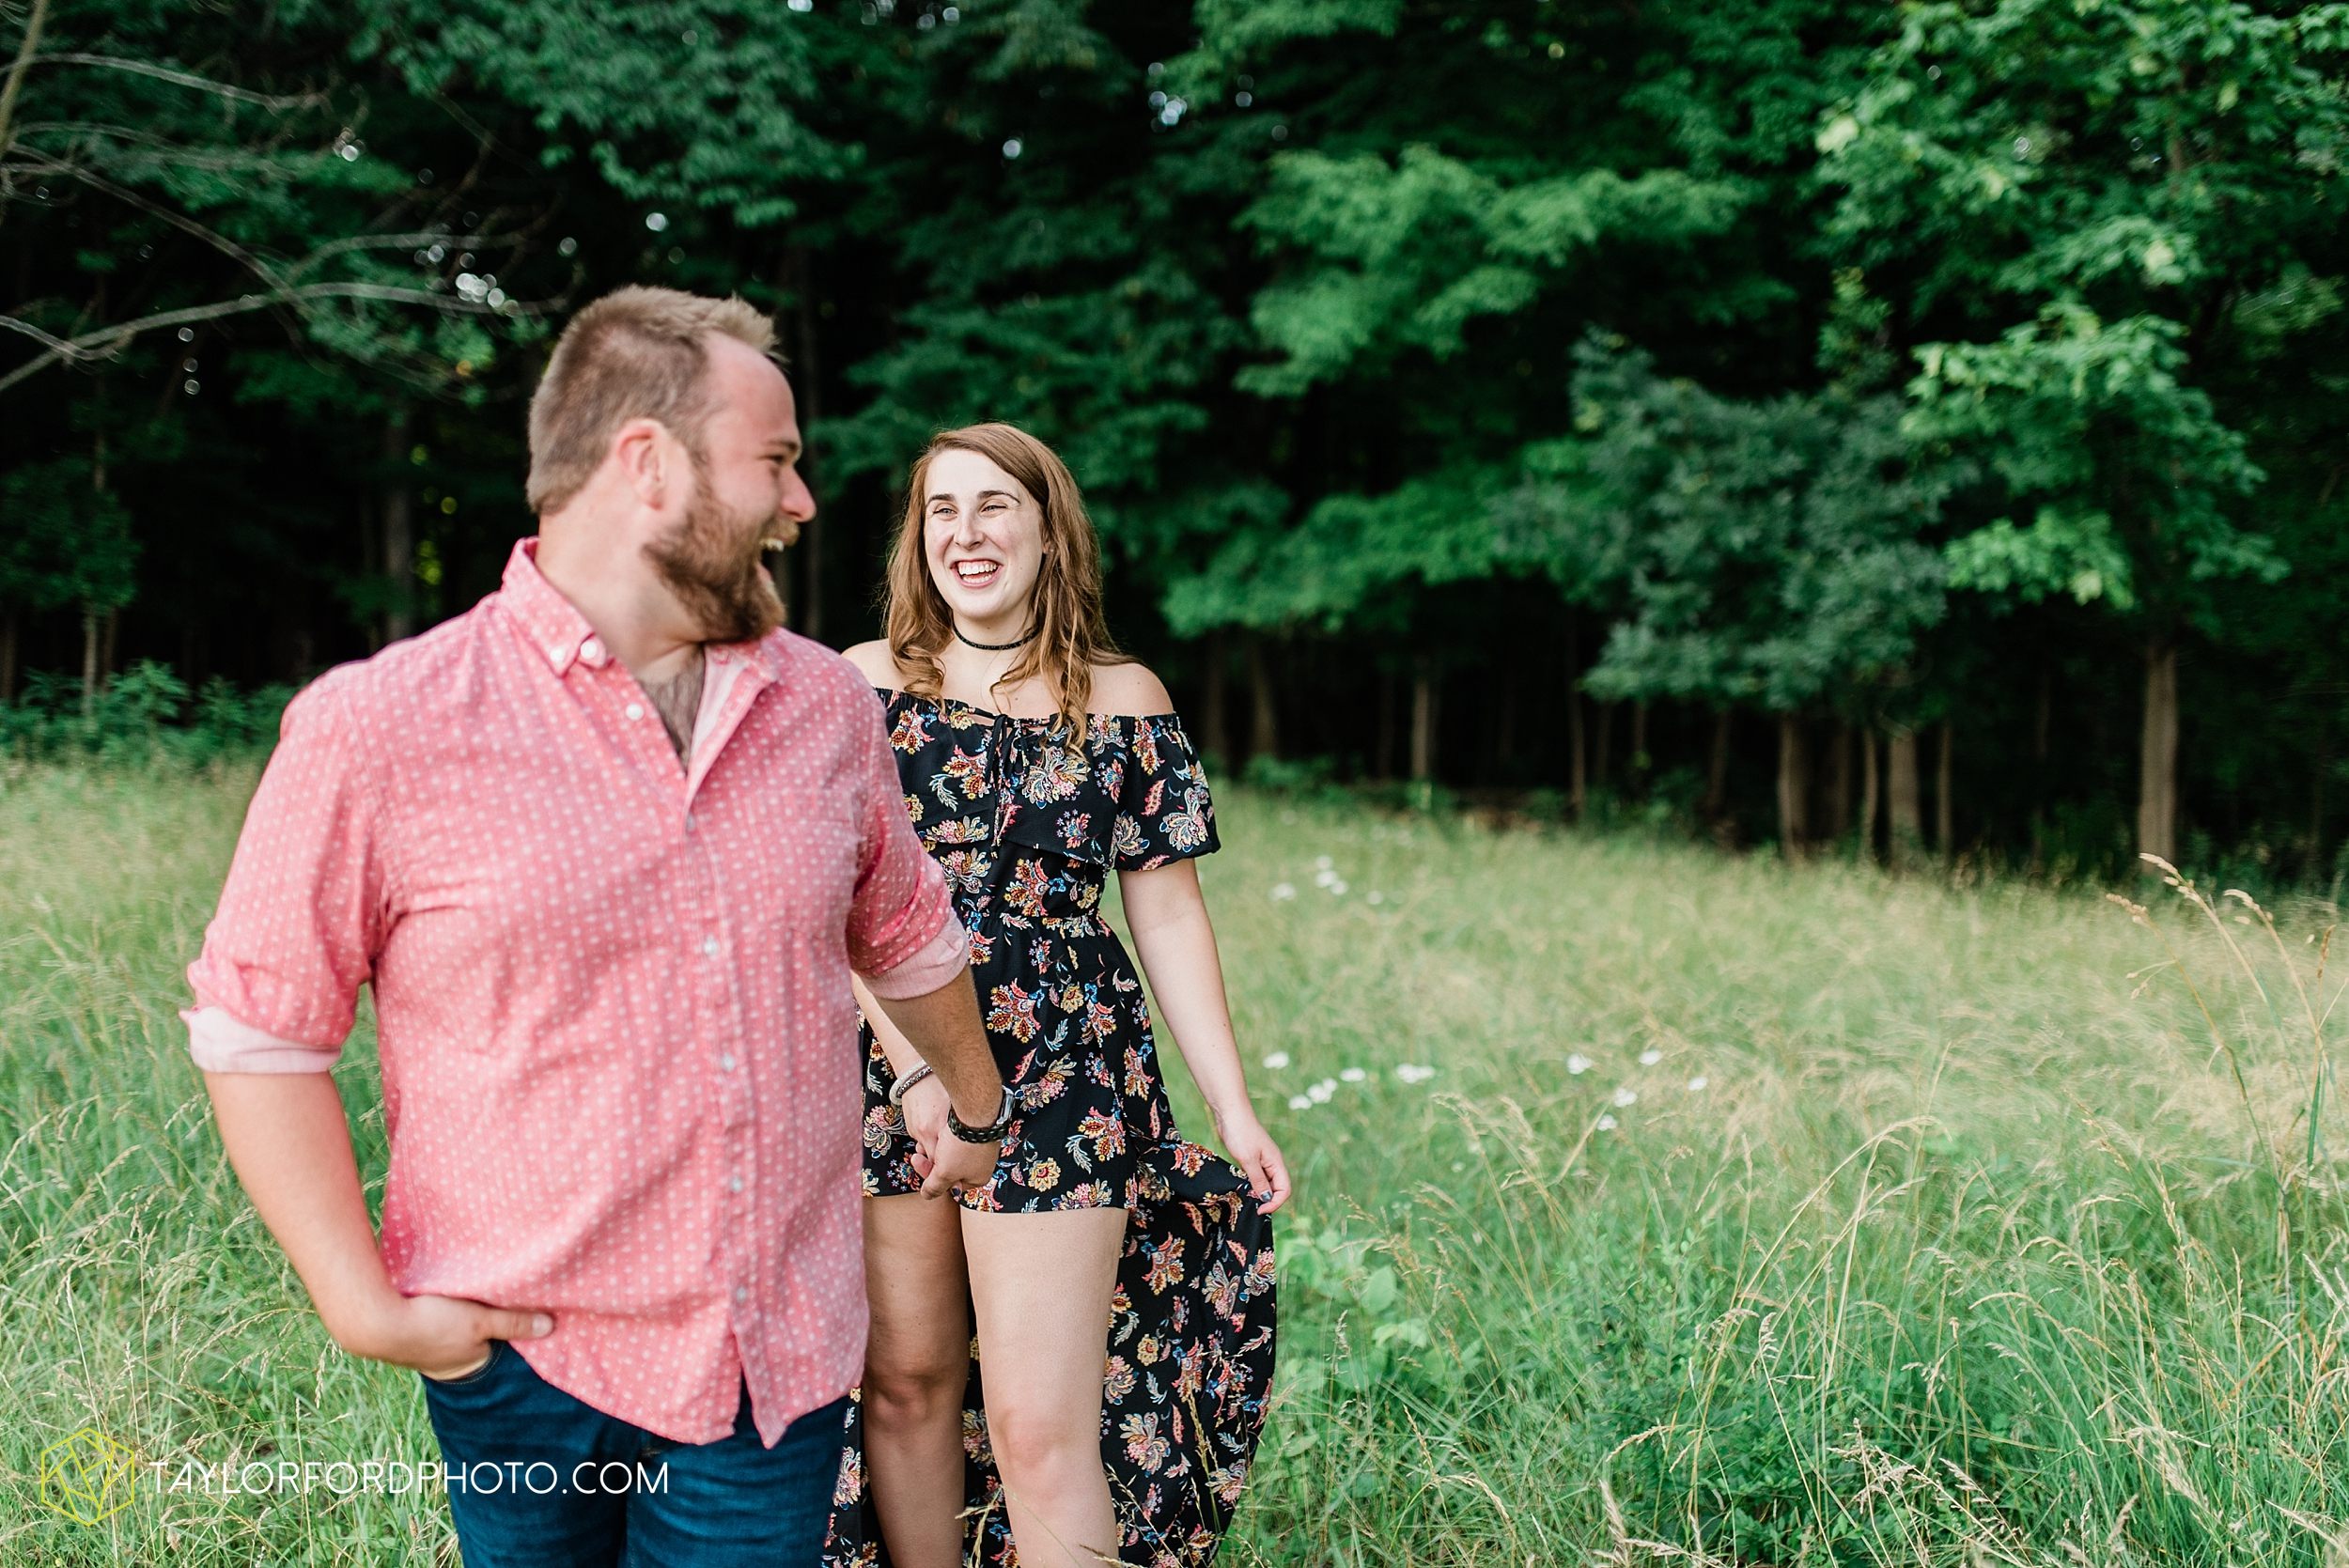 chelsey-jackson-young-downtown-fort-wayne-indiana-the-halls-deck-engagement-wedding-photographer-Taylor-Ford-Photography_8224.jpg